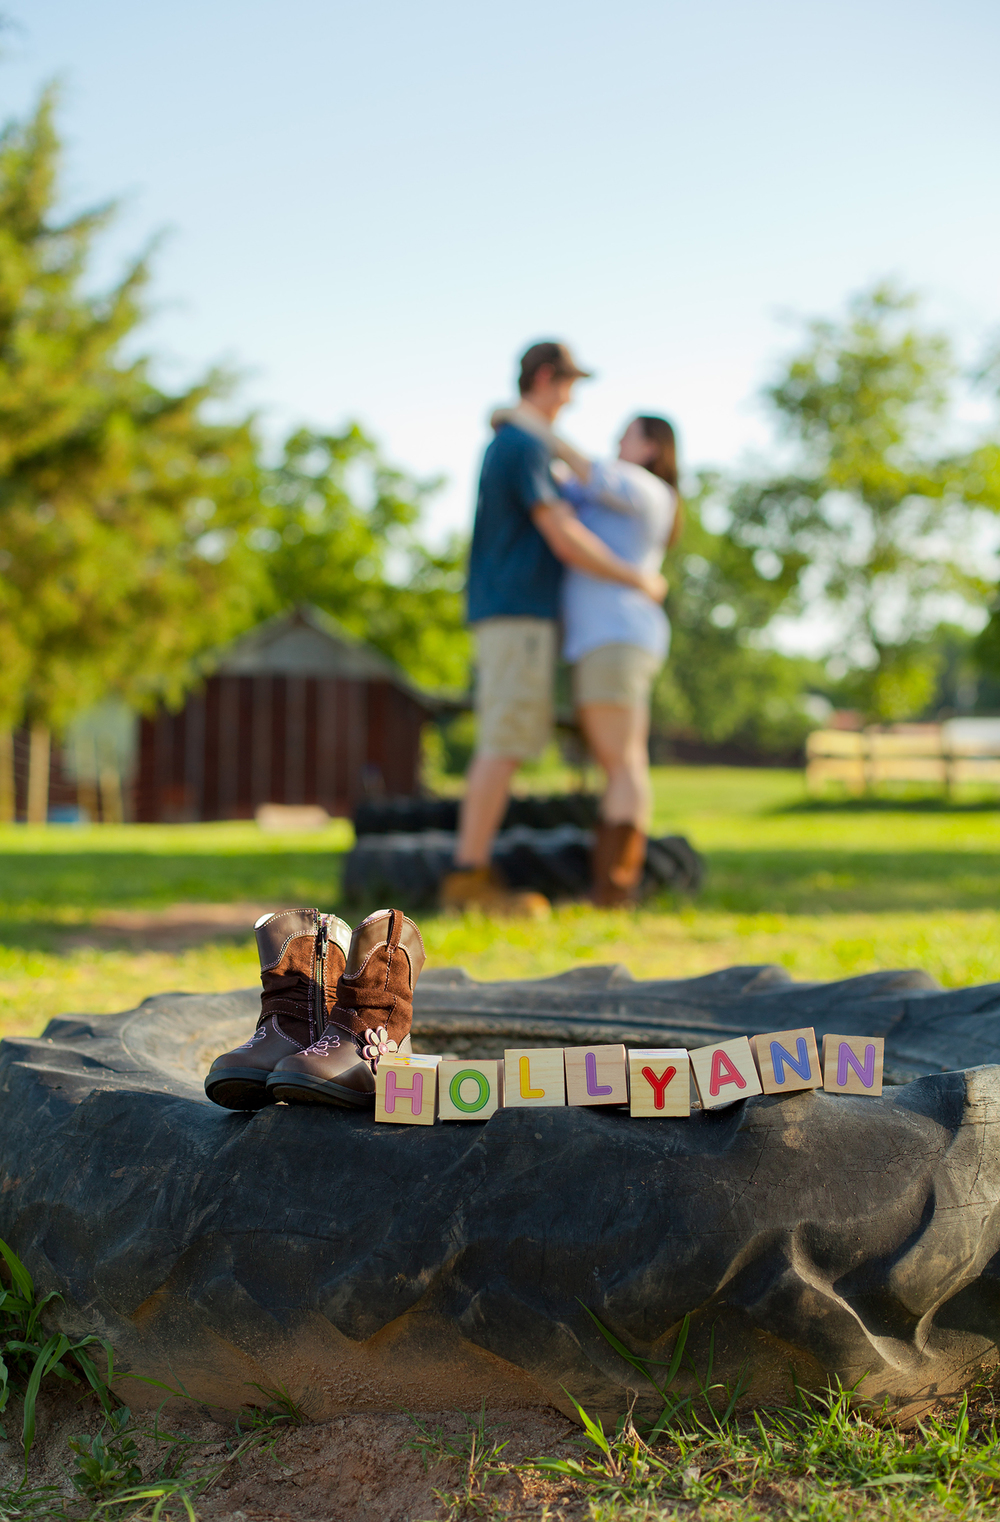 Creative-Gender-Reveal-Photography-at-Red-Hill-Farm-in-Franklinton-NC